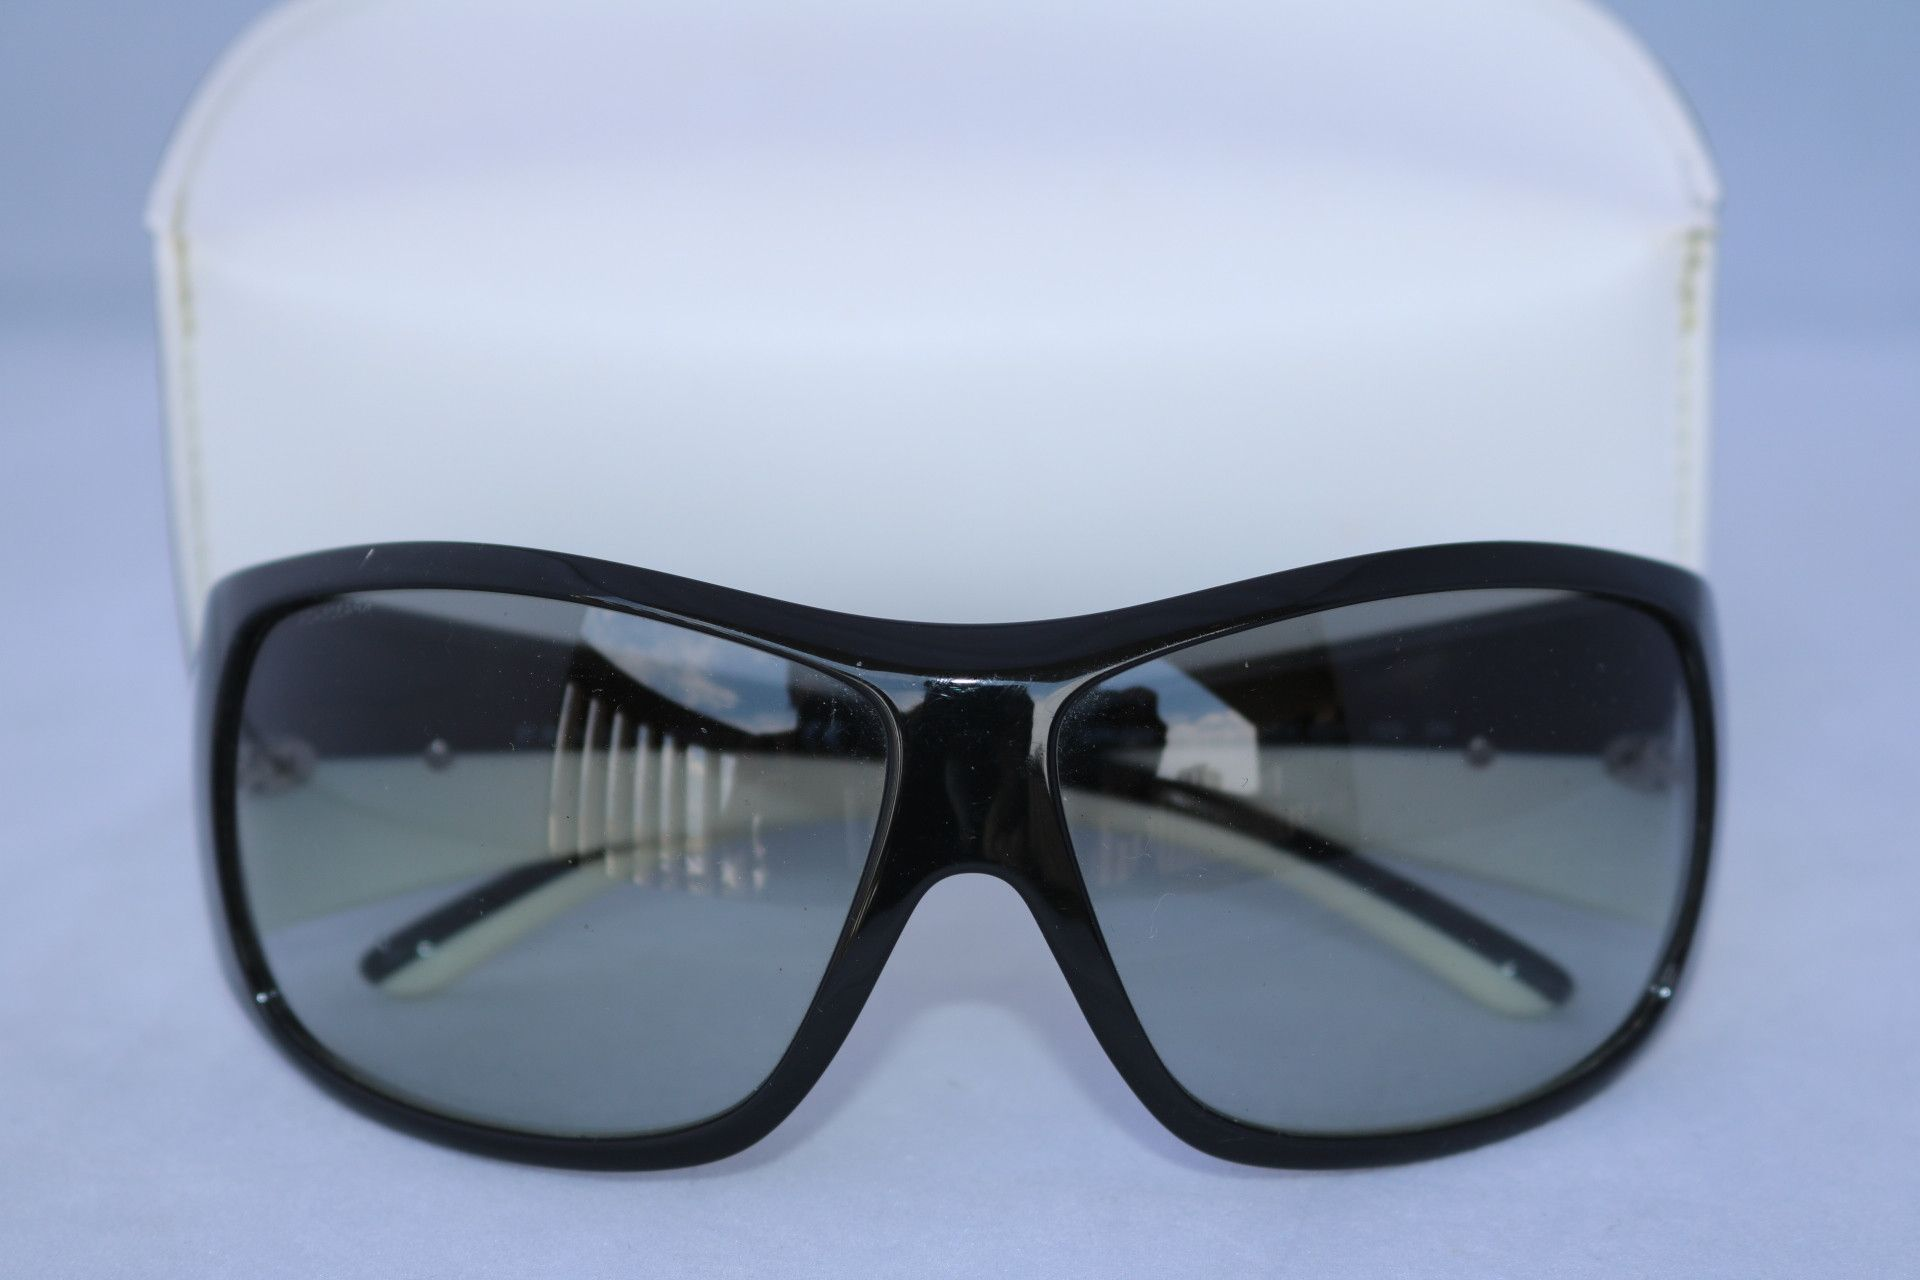 46c523b6537fc PRADA SPR 20 H SNINY BLACK WHITE SUNGLASSES RECTANGULAR UNISEX DISCONTINUED